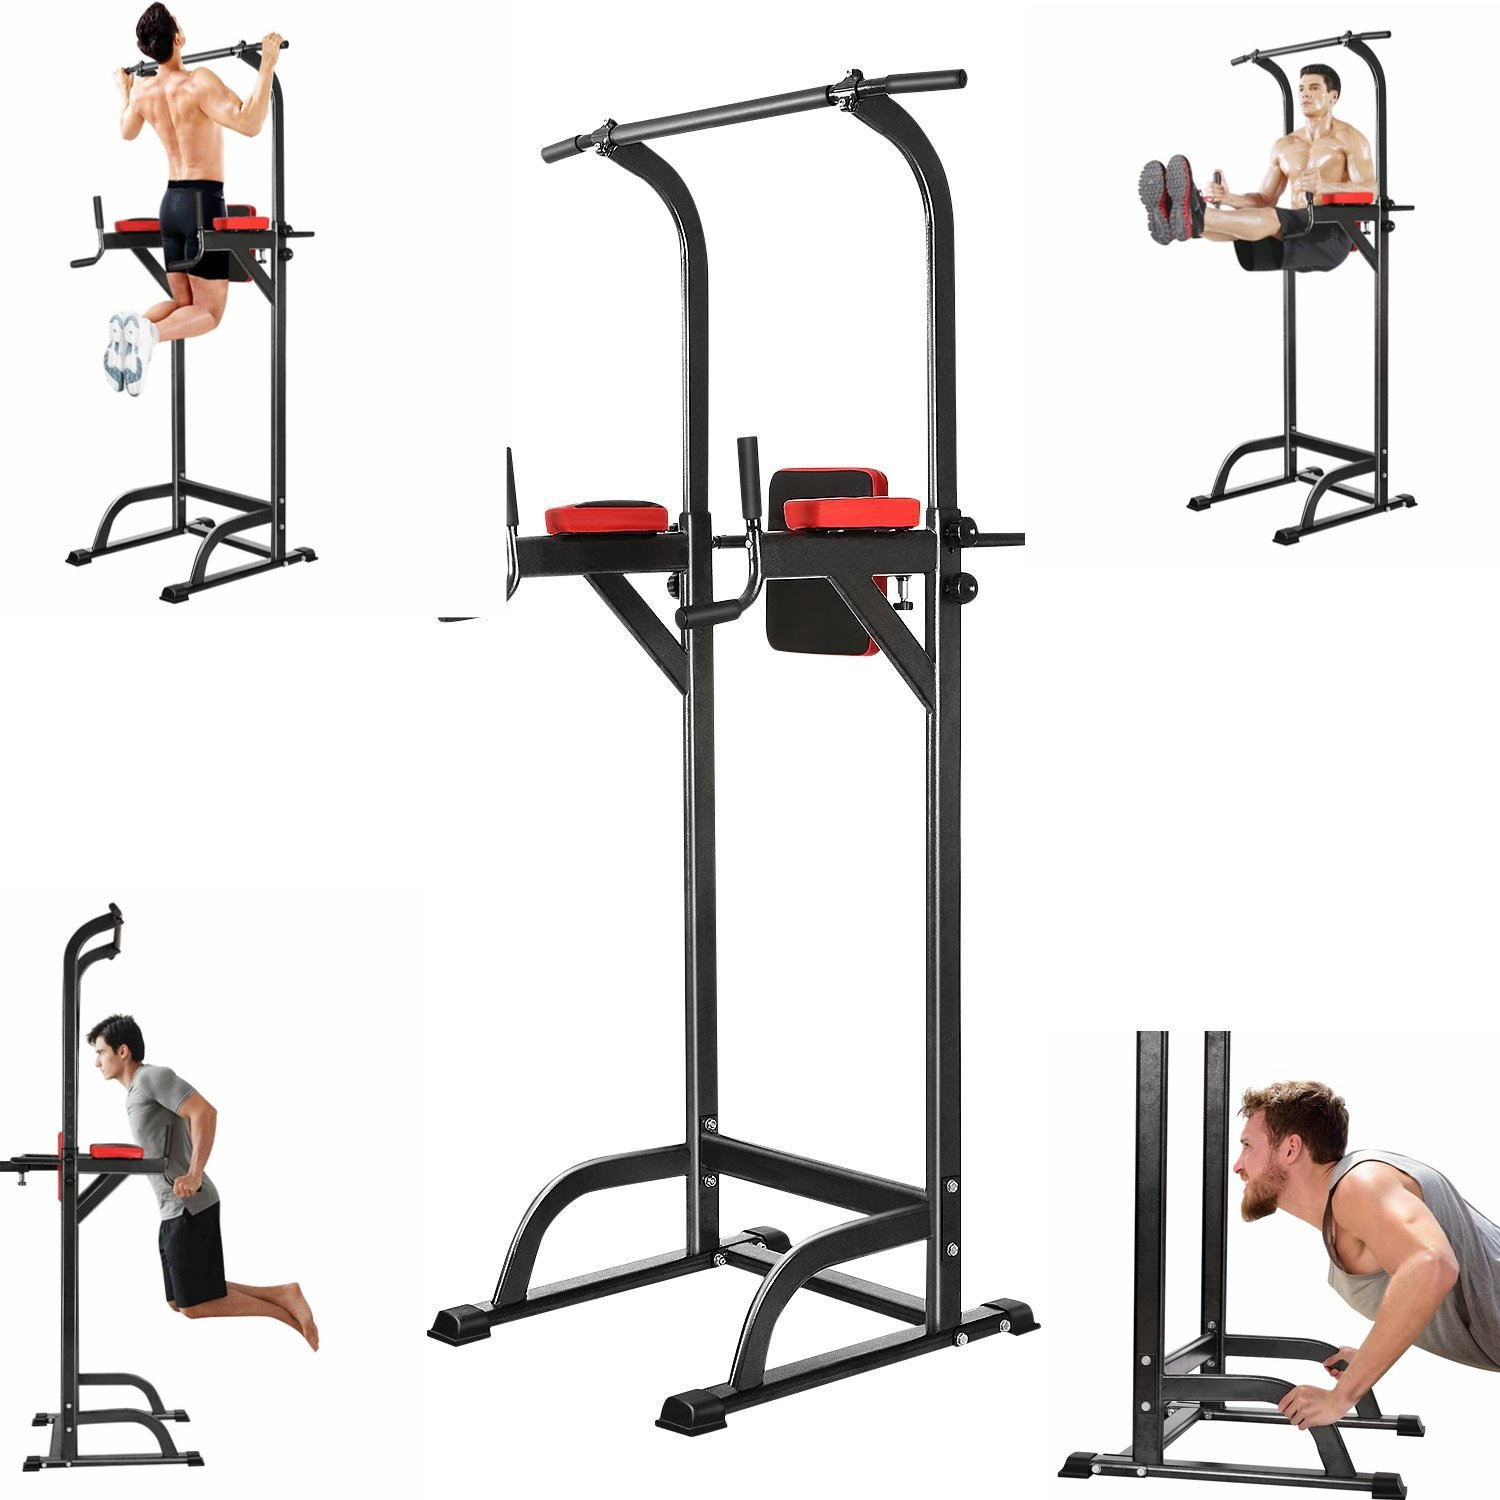 Garain Multi-Functional Power Tower Station, Adjustable Height Workout Standing, Push-Up Pull-Up Station for Home Gym Fitness (US Stock)